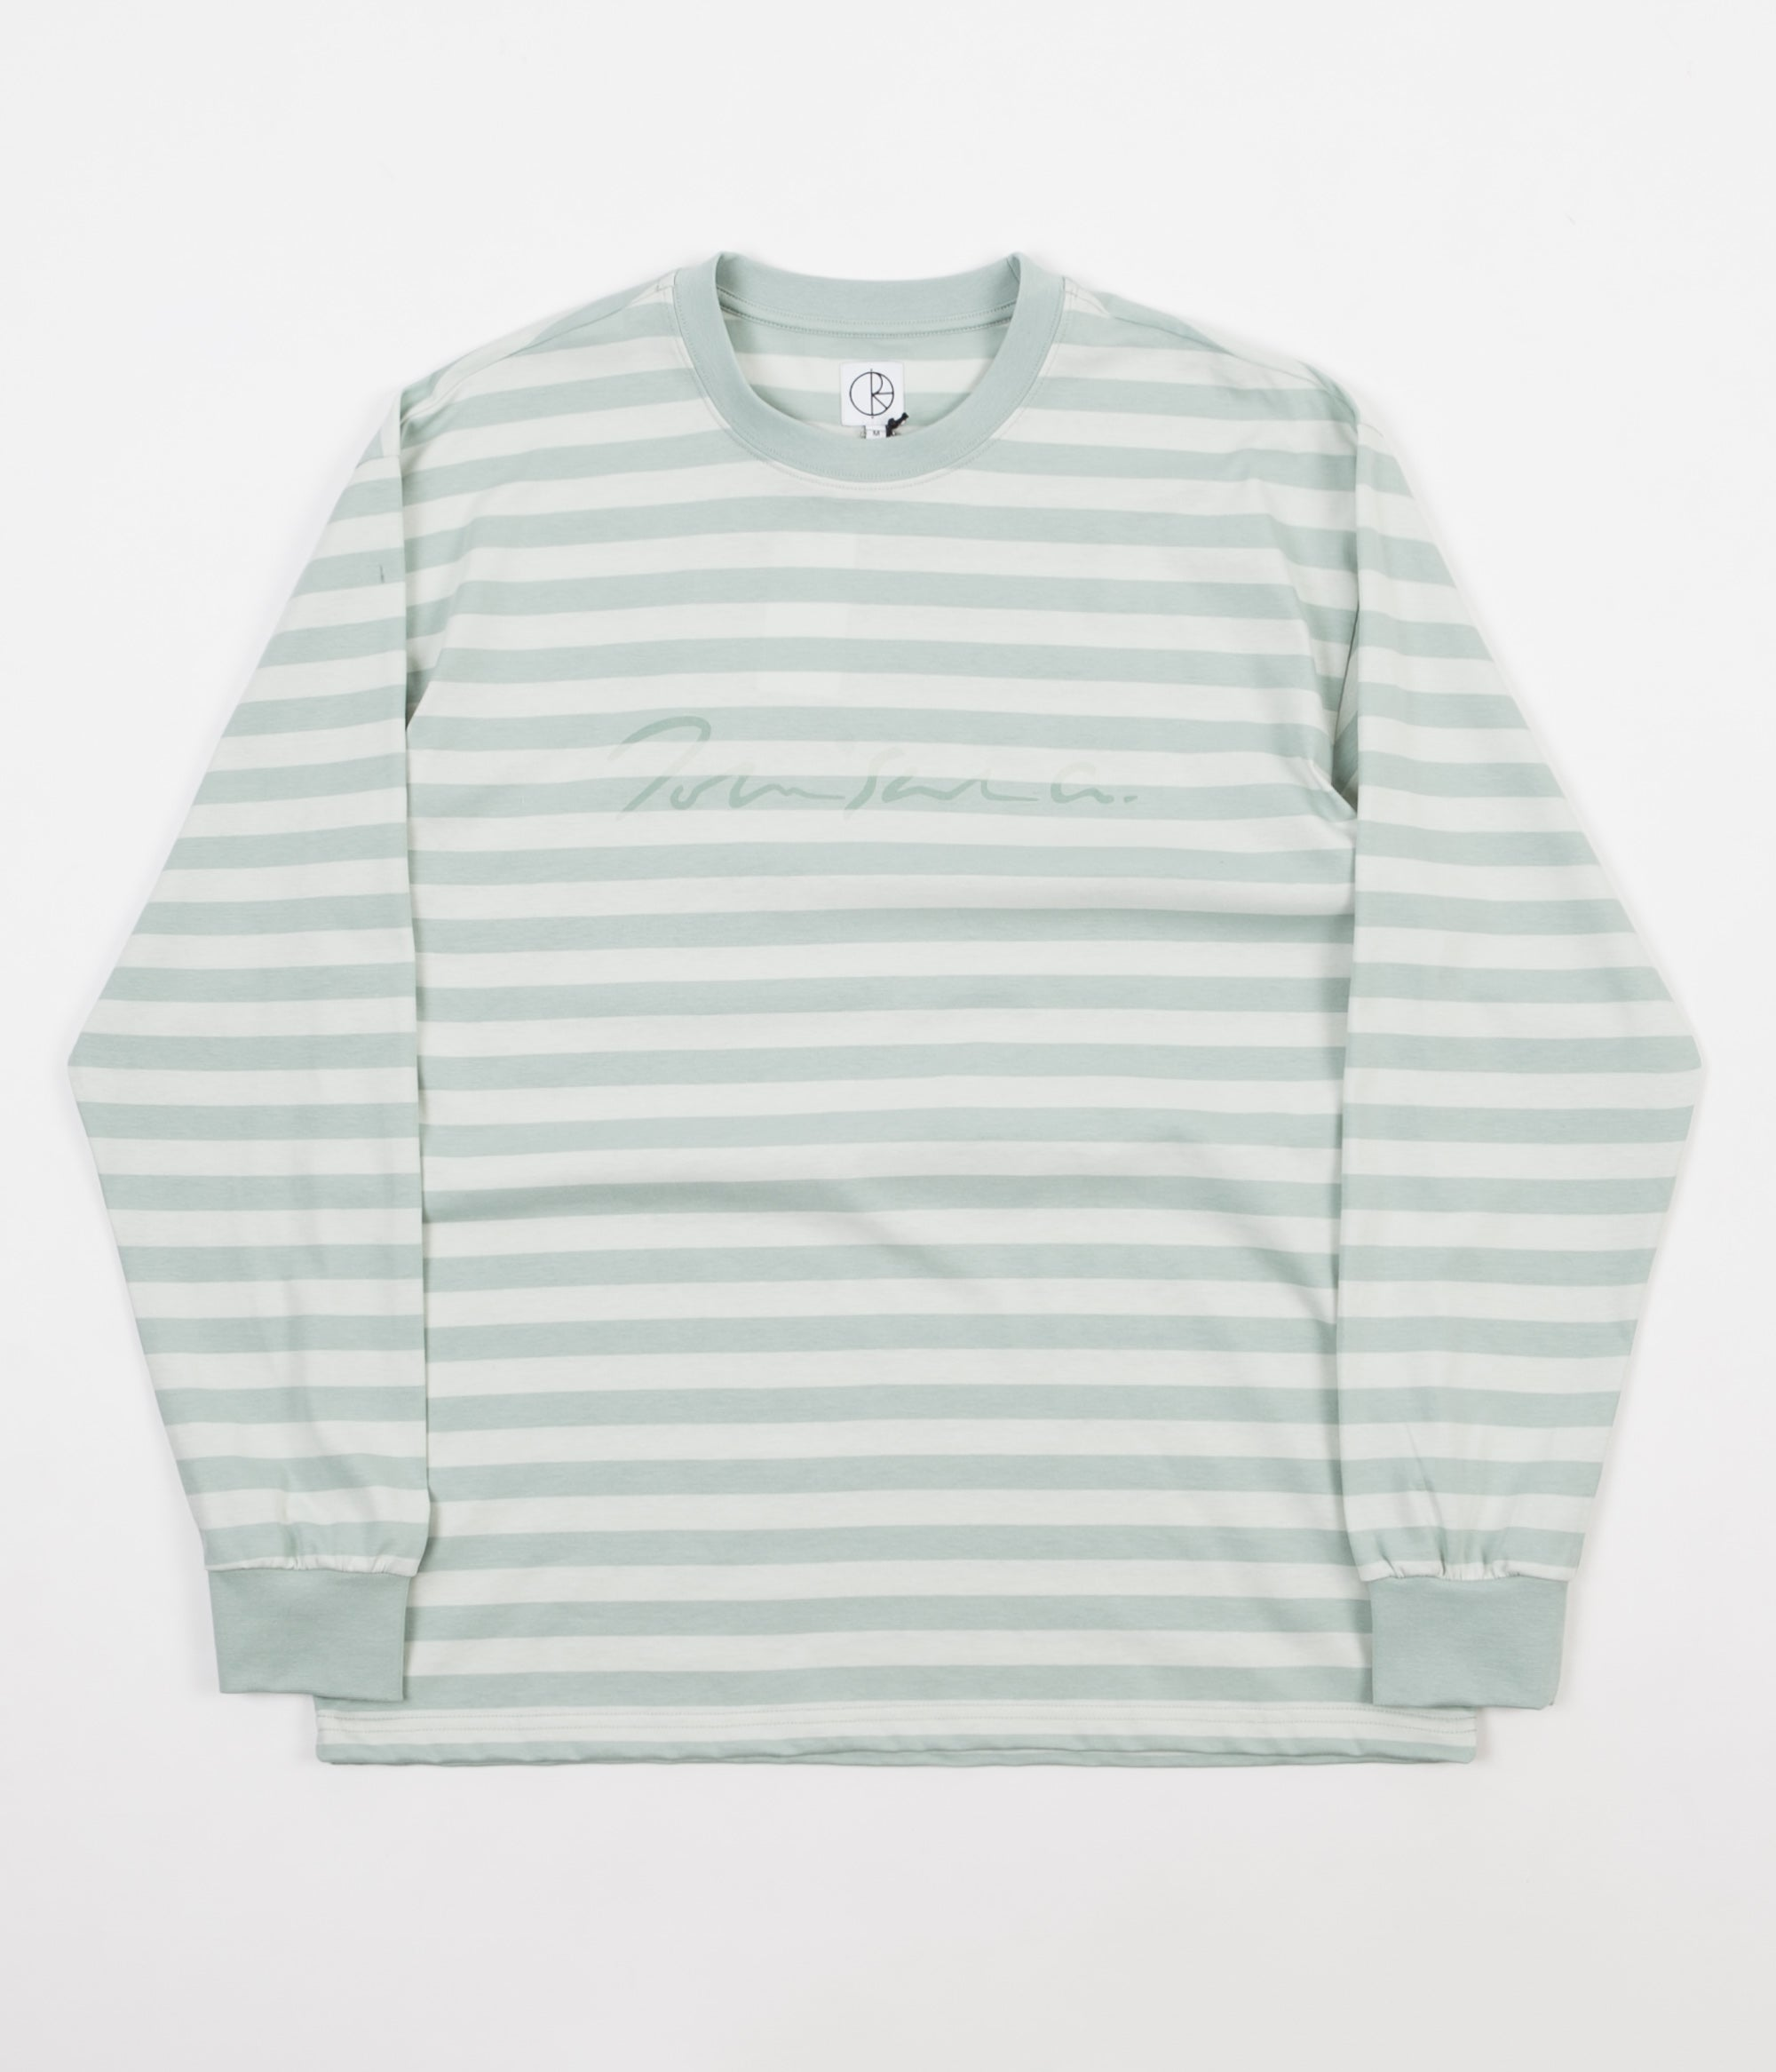 f94b7d0e1f Polar Signature Striped Long Sleeve T-Shirt - Stone Blue | Flatspot